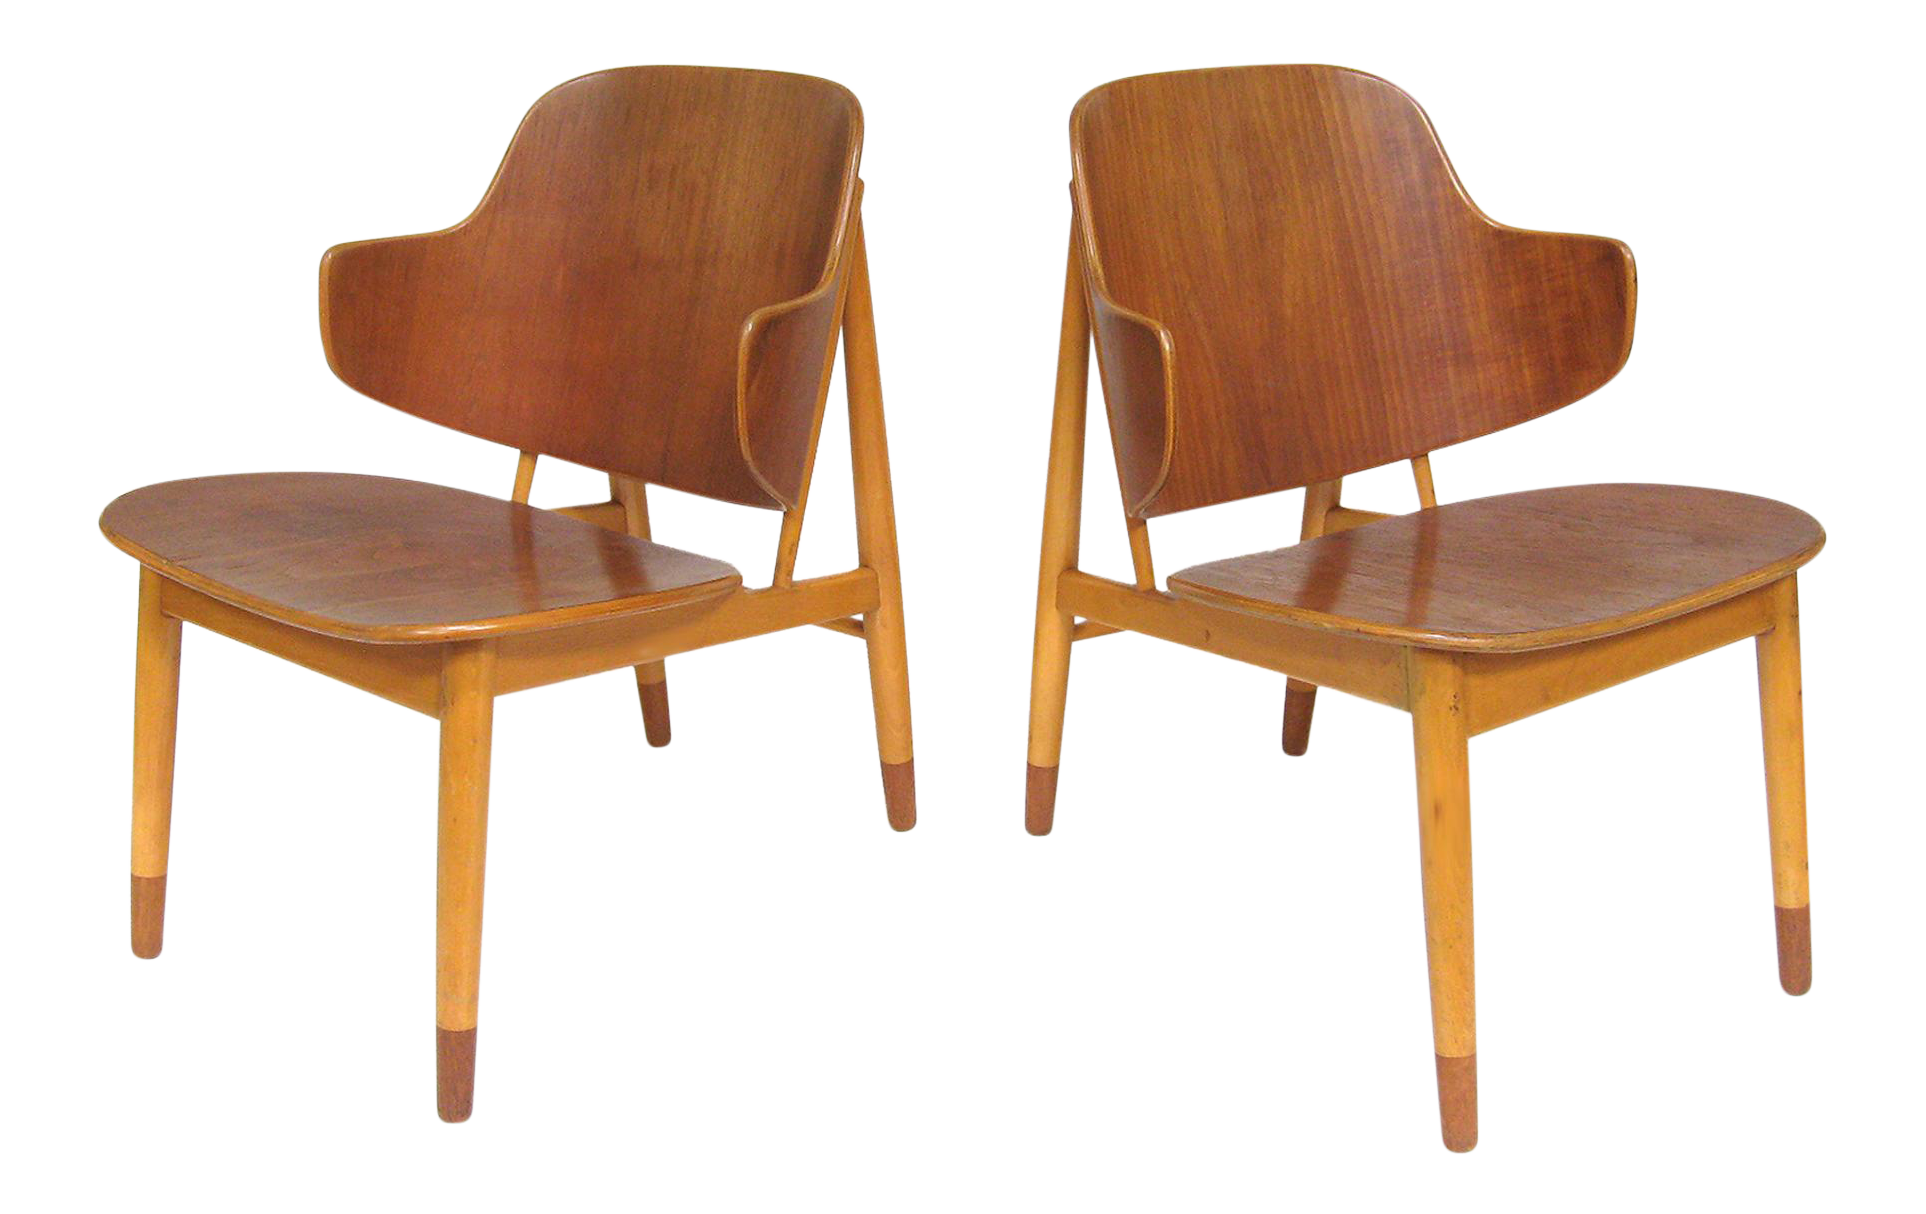 This sculptural pair of lounge chairs by ib kofod larsen is no longer - Image Of Pair Of Lounge Chairs In Teak And Birch By Ib Kofod Larsen